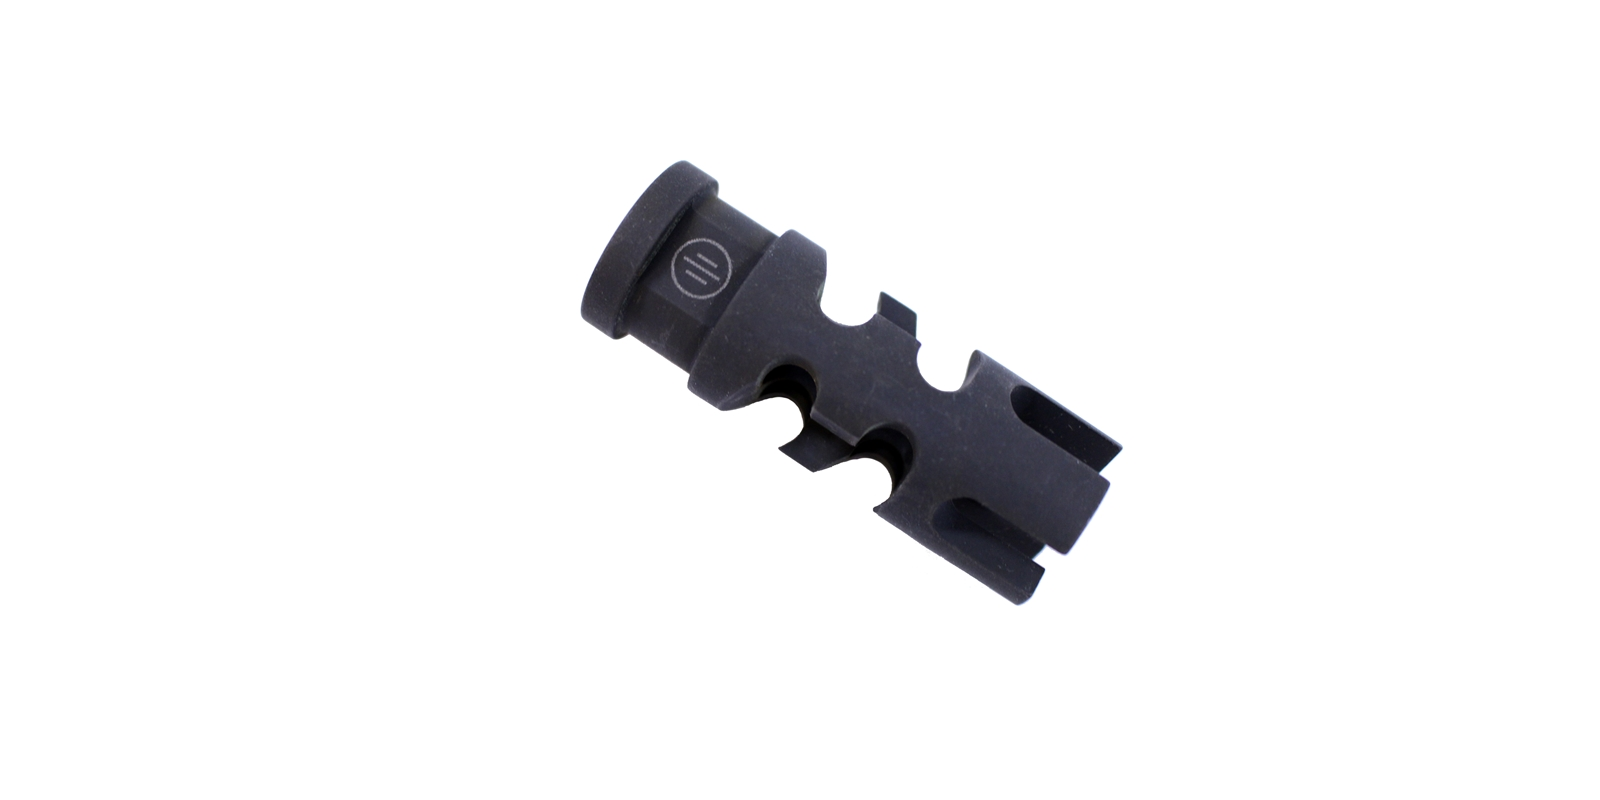 PWS FSC556 Compensator (Old Style) 1/2X28